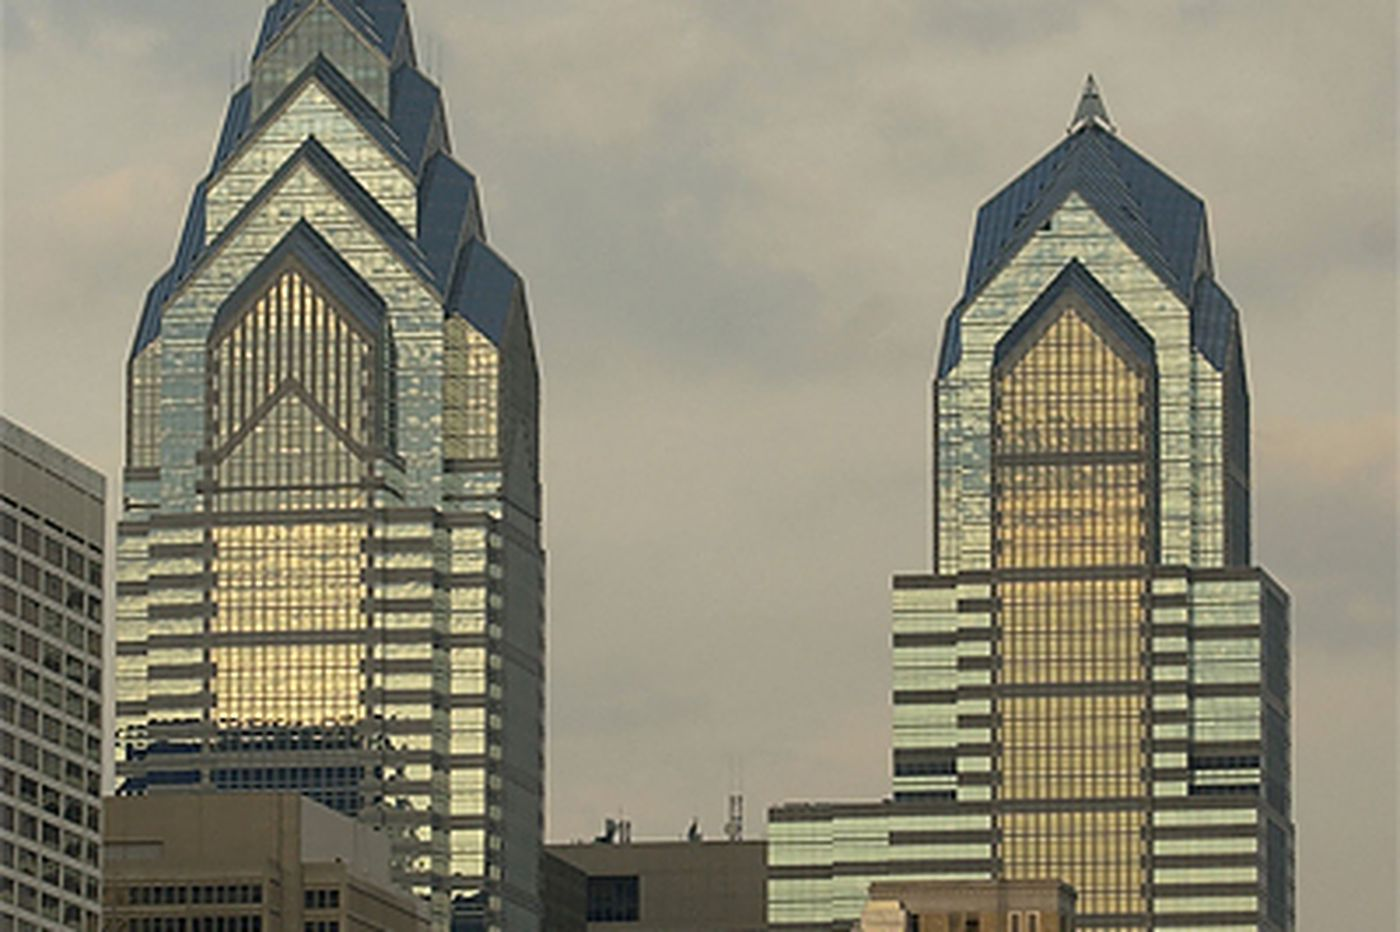 PhillyDeals: Unisys moving to town? Not without a sign